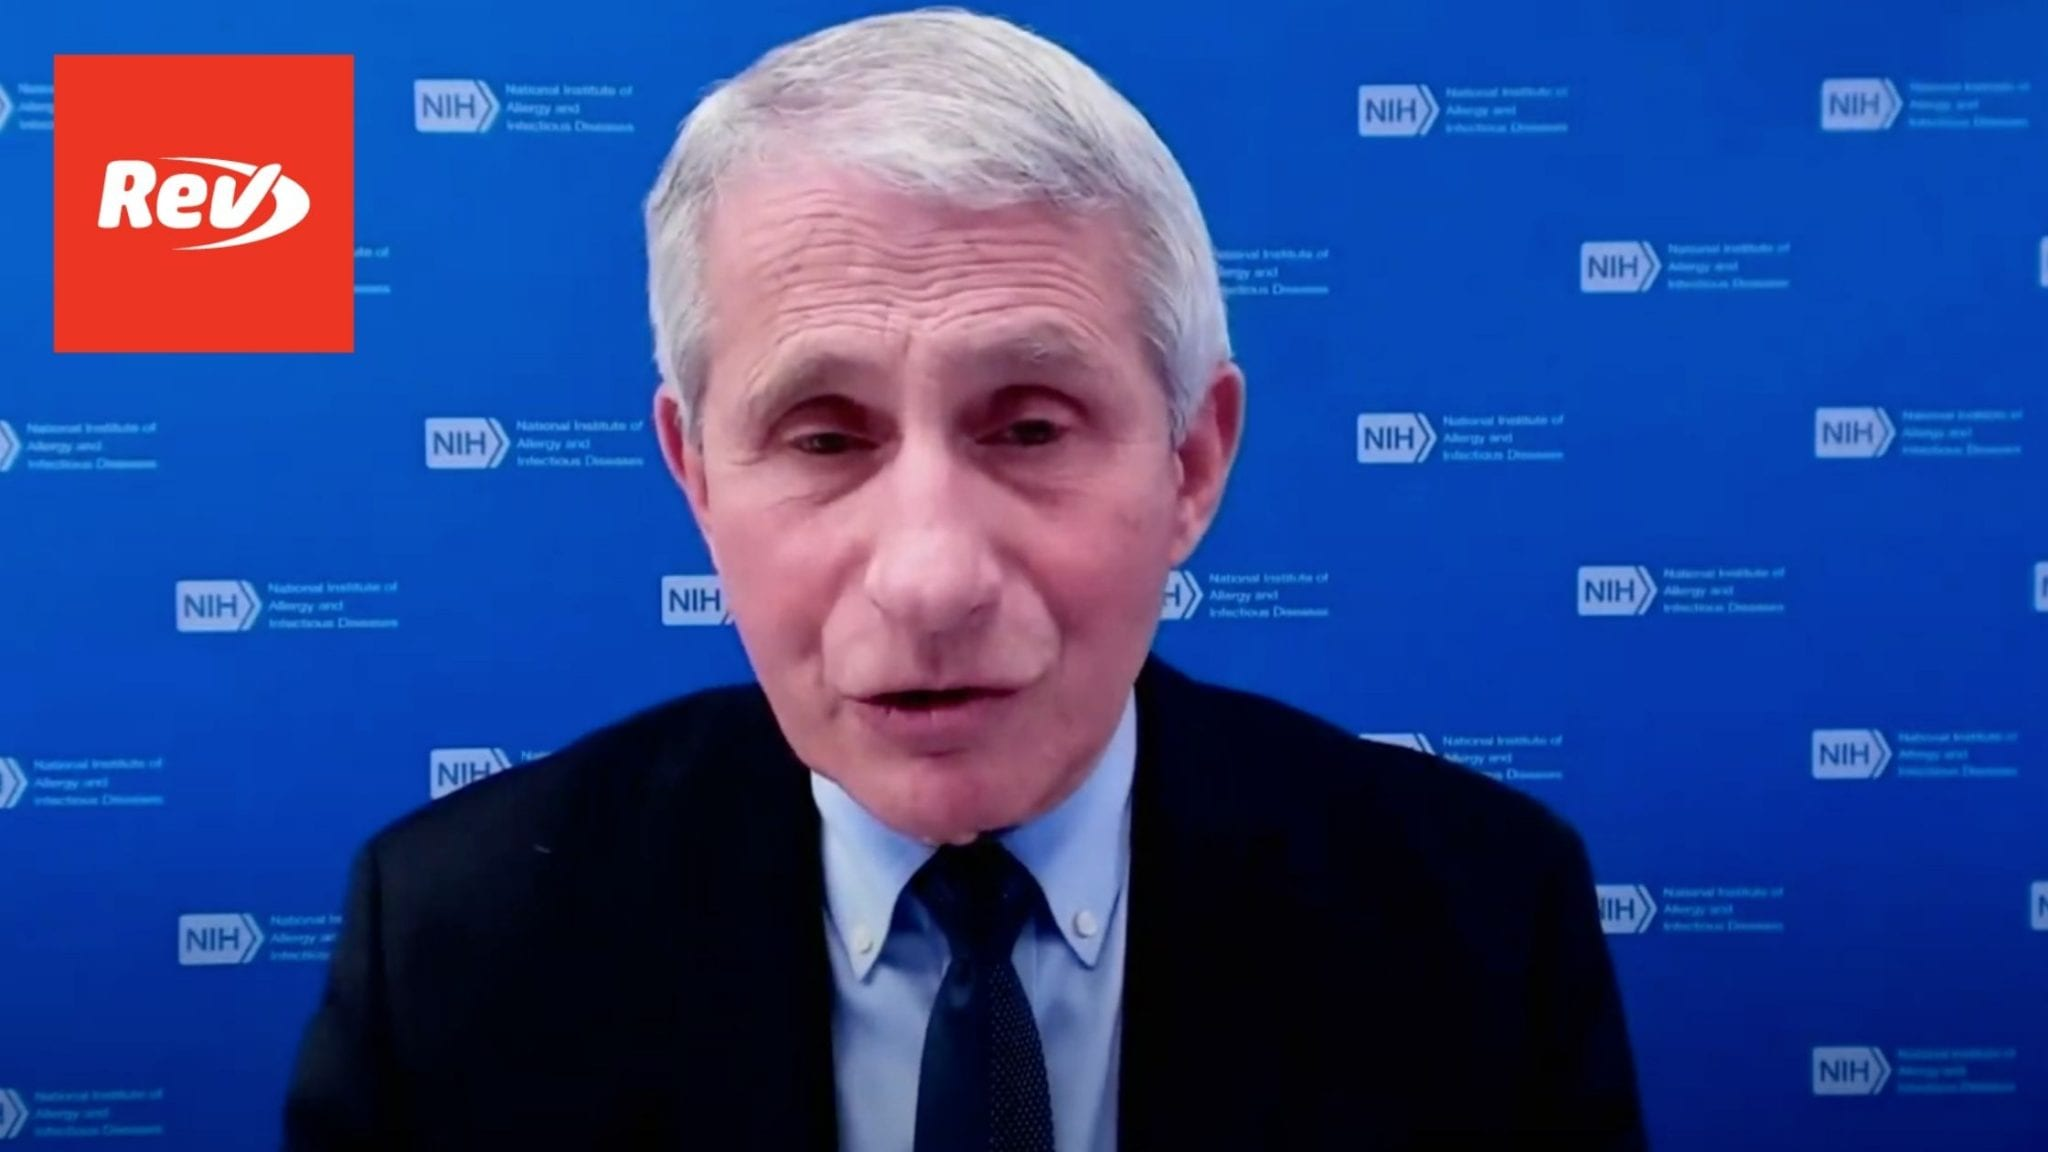 White House COVID-19 Task Force, Dr. Fauci Press Conference Transcript February 22